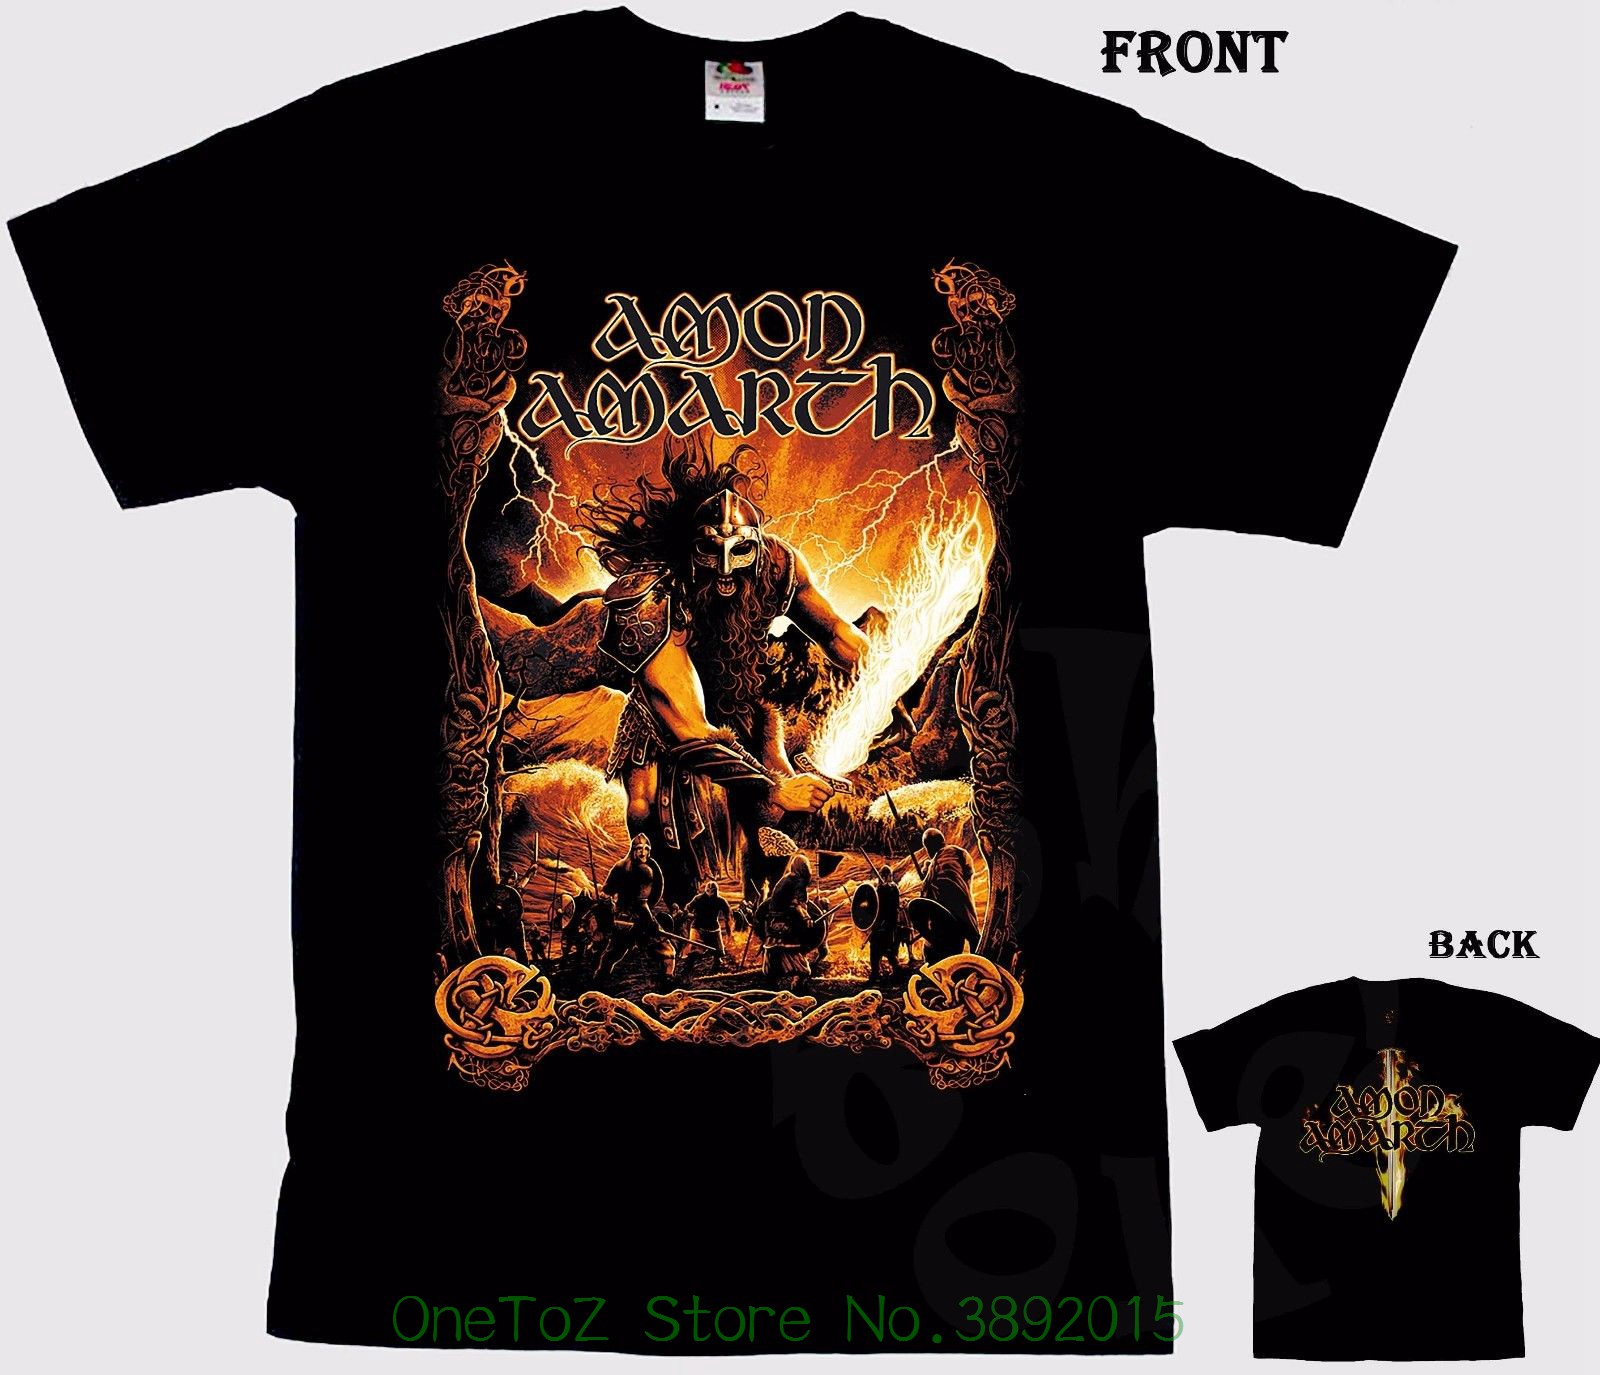 New Fashion Mens Short Sleeve Amon Amarth - Melodic Viking Death Metal Band , T-shirt - S Izes : S To 7xl